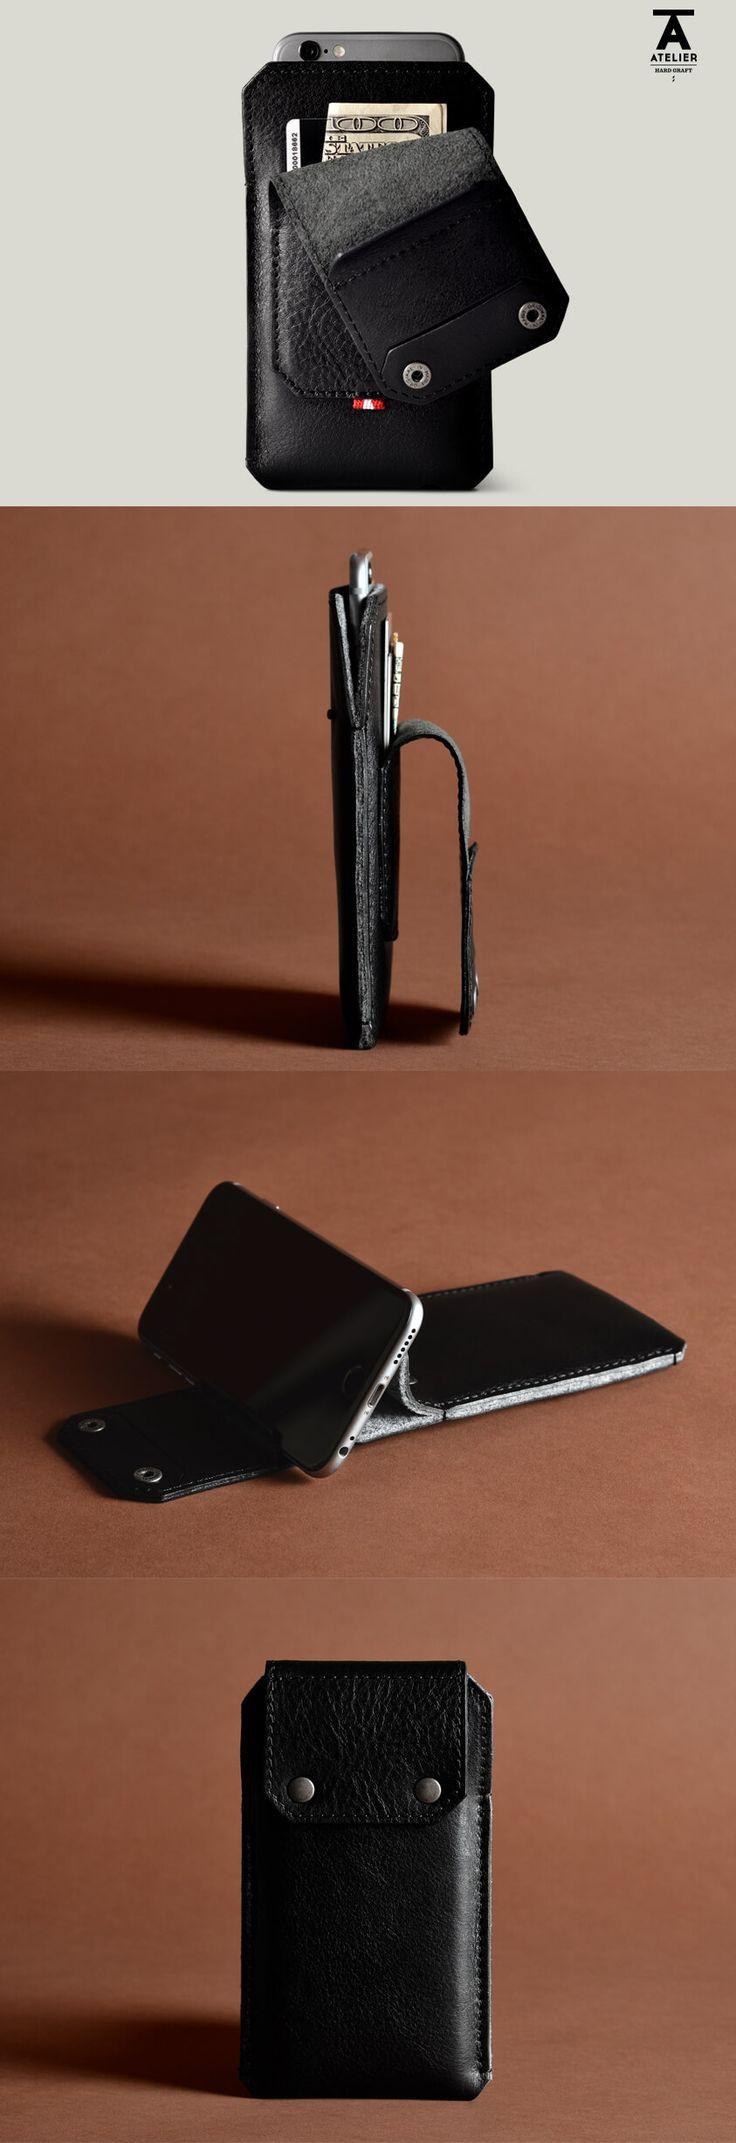 This phone case is absolutely perfect for air travel. Take your phone, wallet…